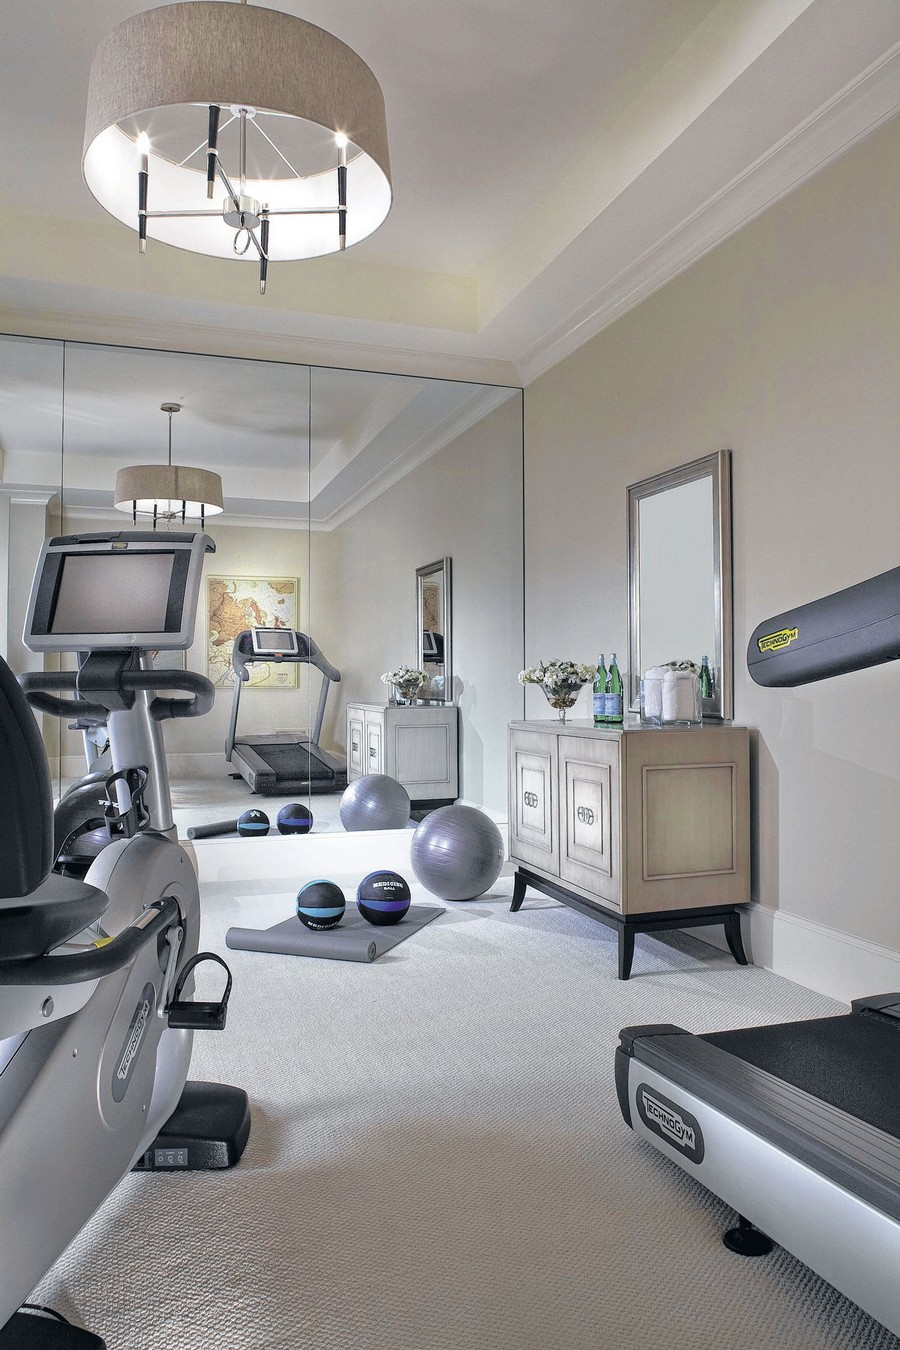 Home gym interior design tips home interior design for Good interior decoration